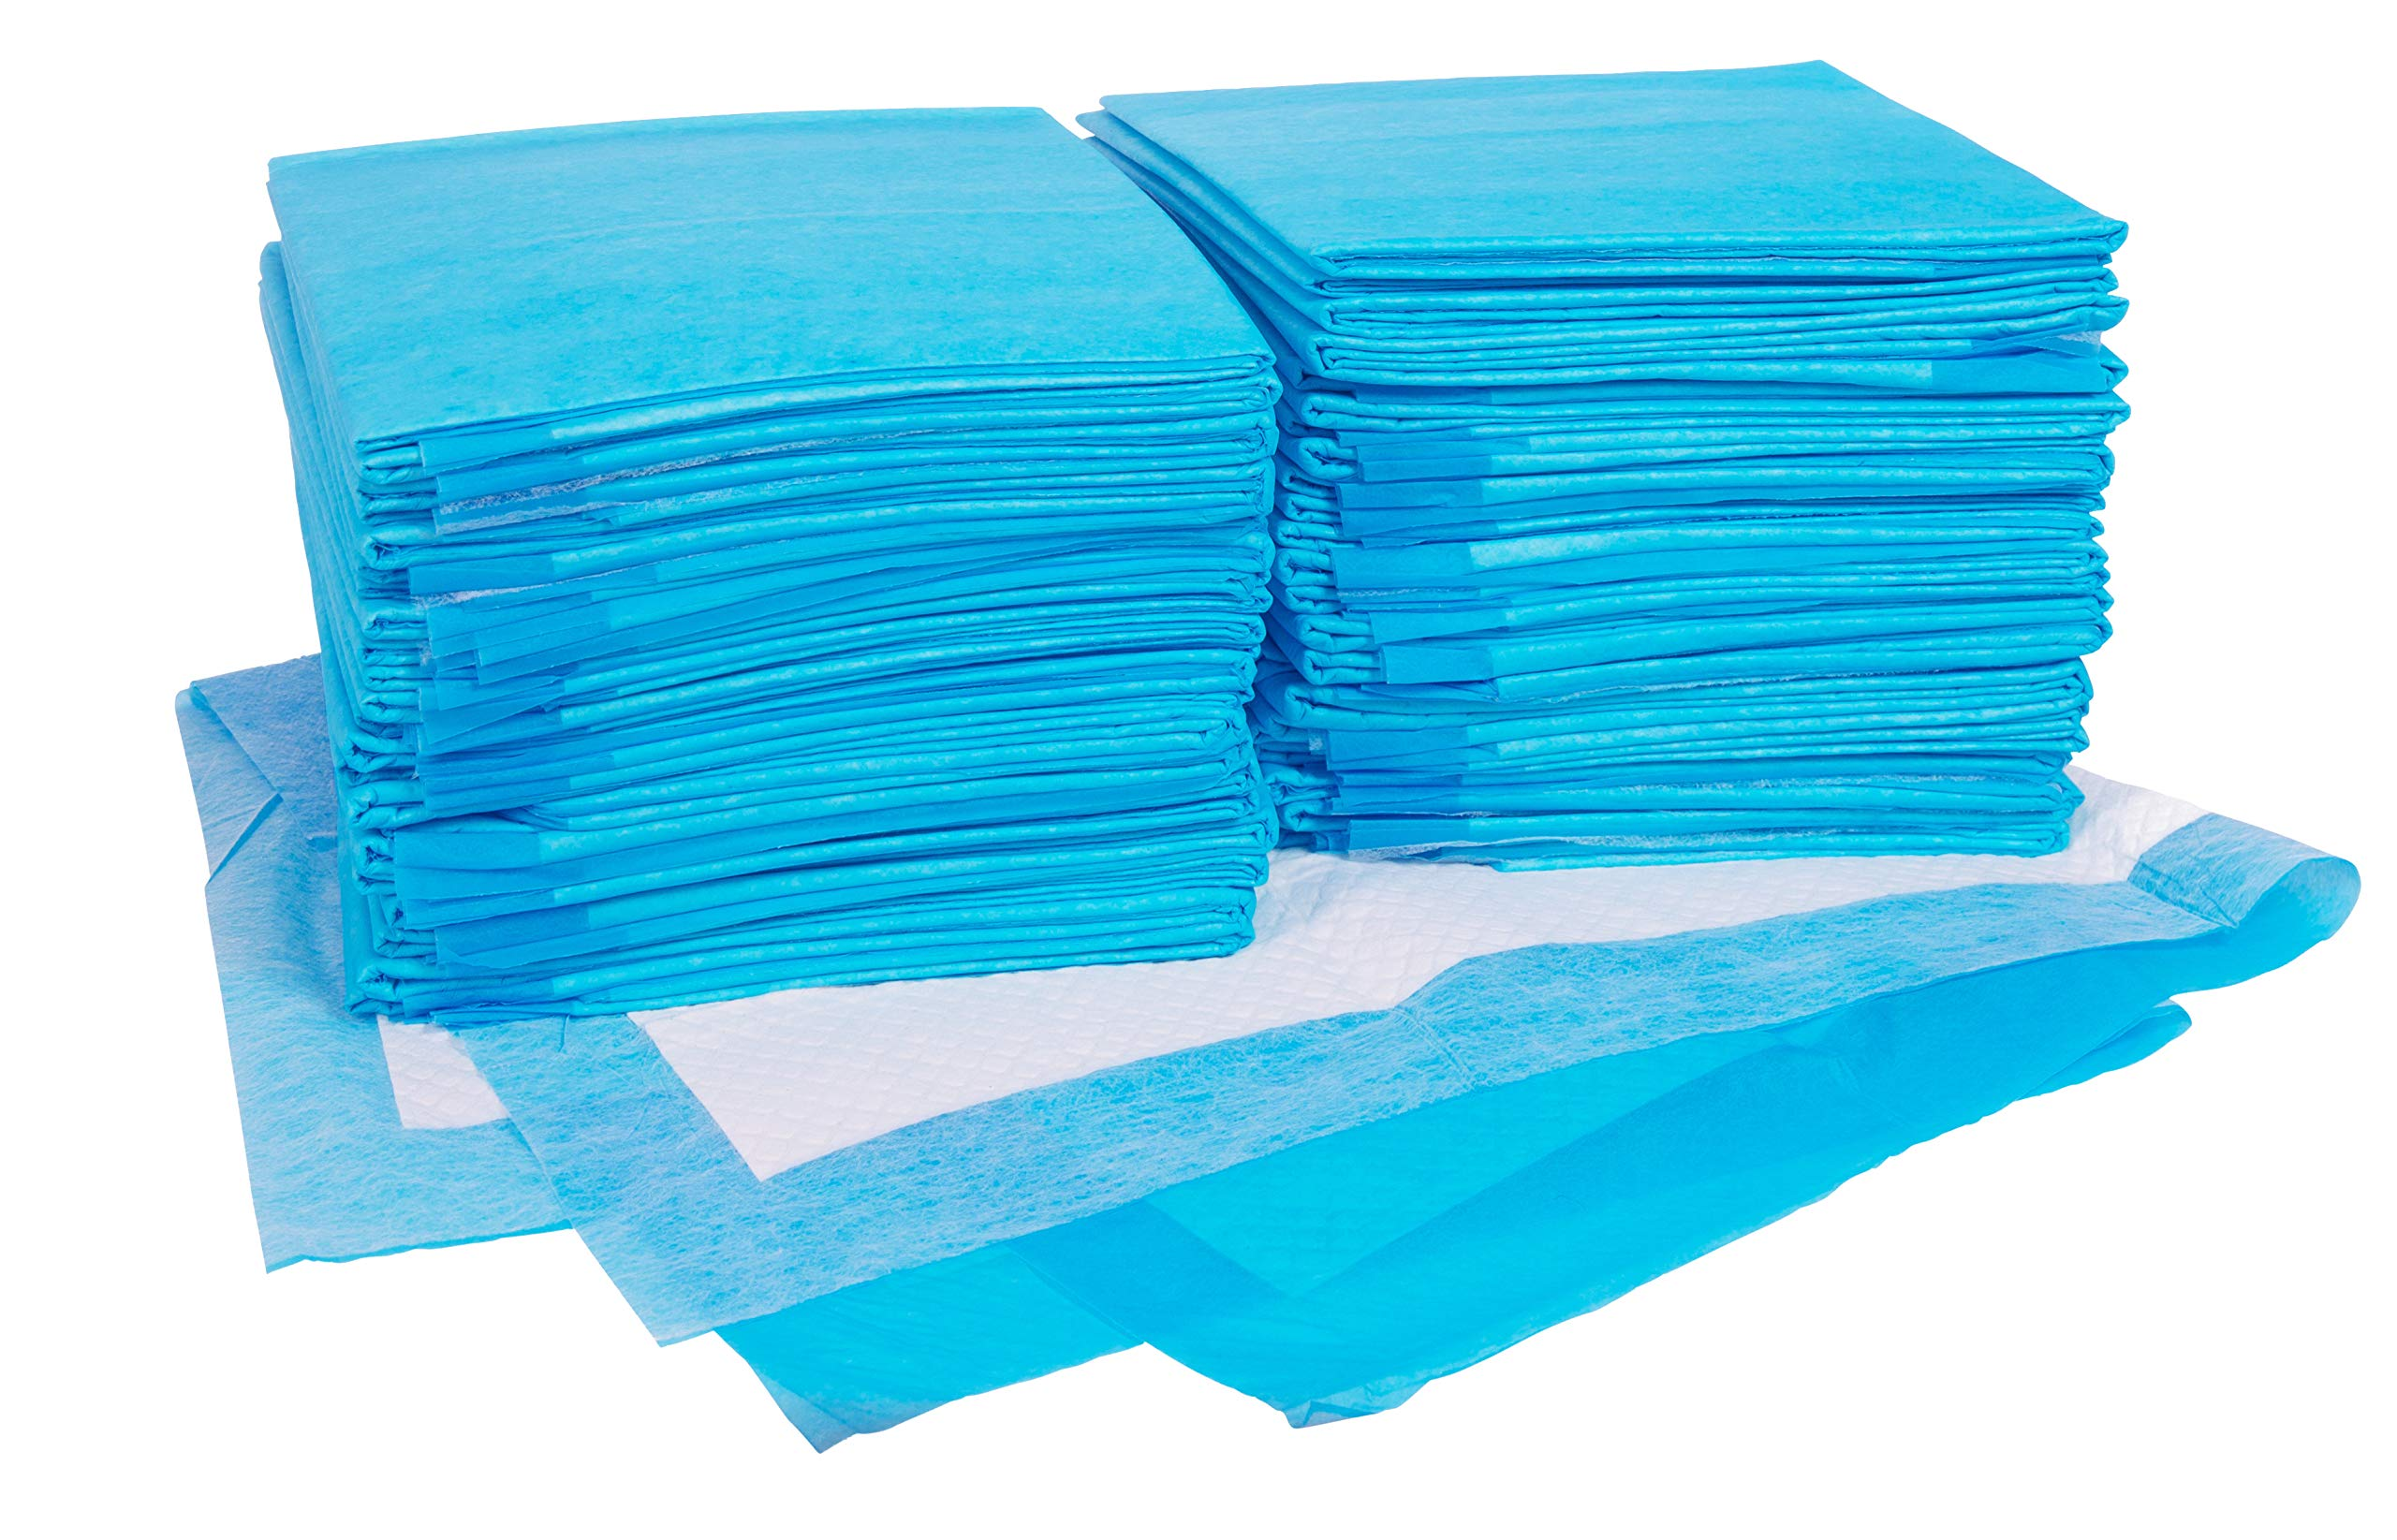 REMEDIES Disposable Underpads With Ultra Absorbent 85g Fluff Fill Extra 3 Grams of SAP 30x36 Inches (Pack of 100) by REMEDIES